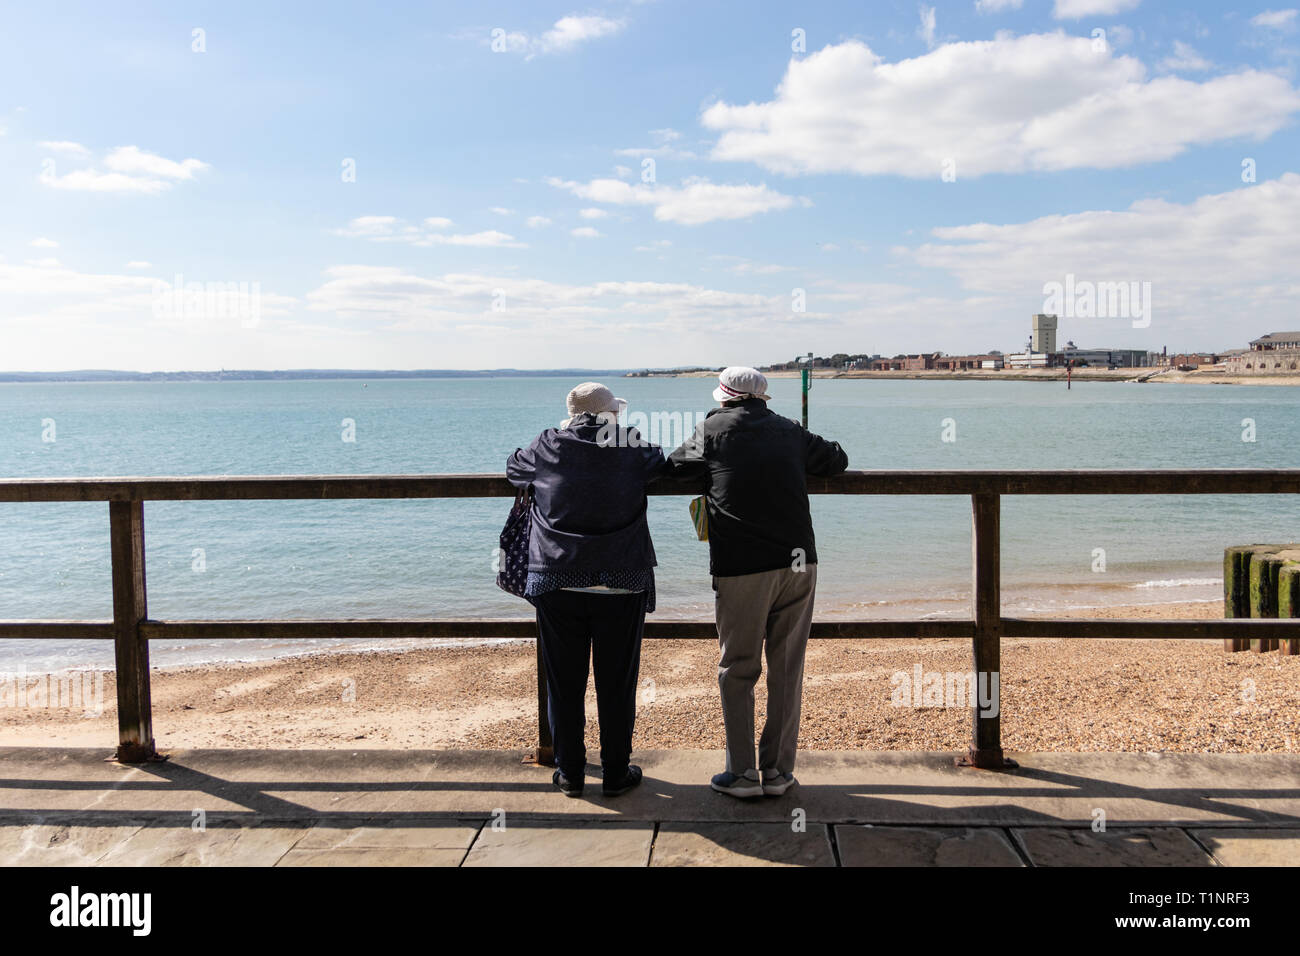 Elderly couple leaning on railings looking at the view over a pebble beach - Stock Image